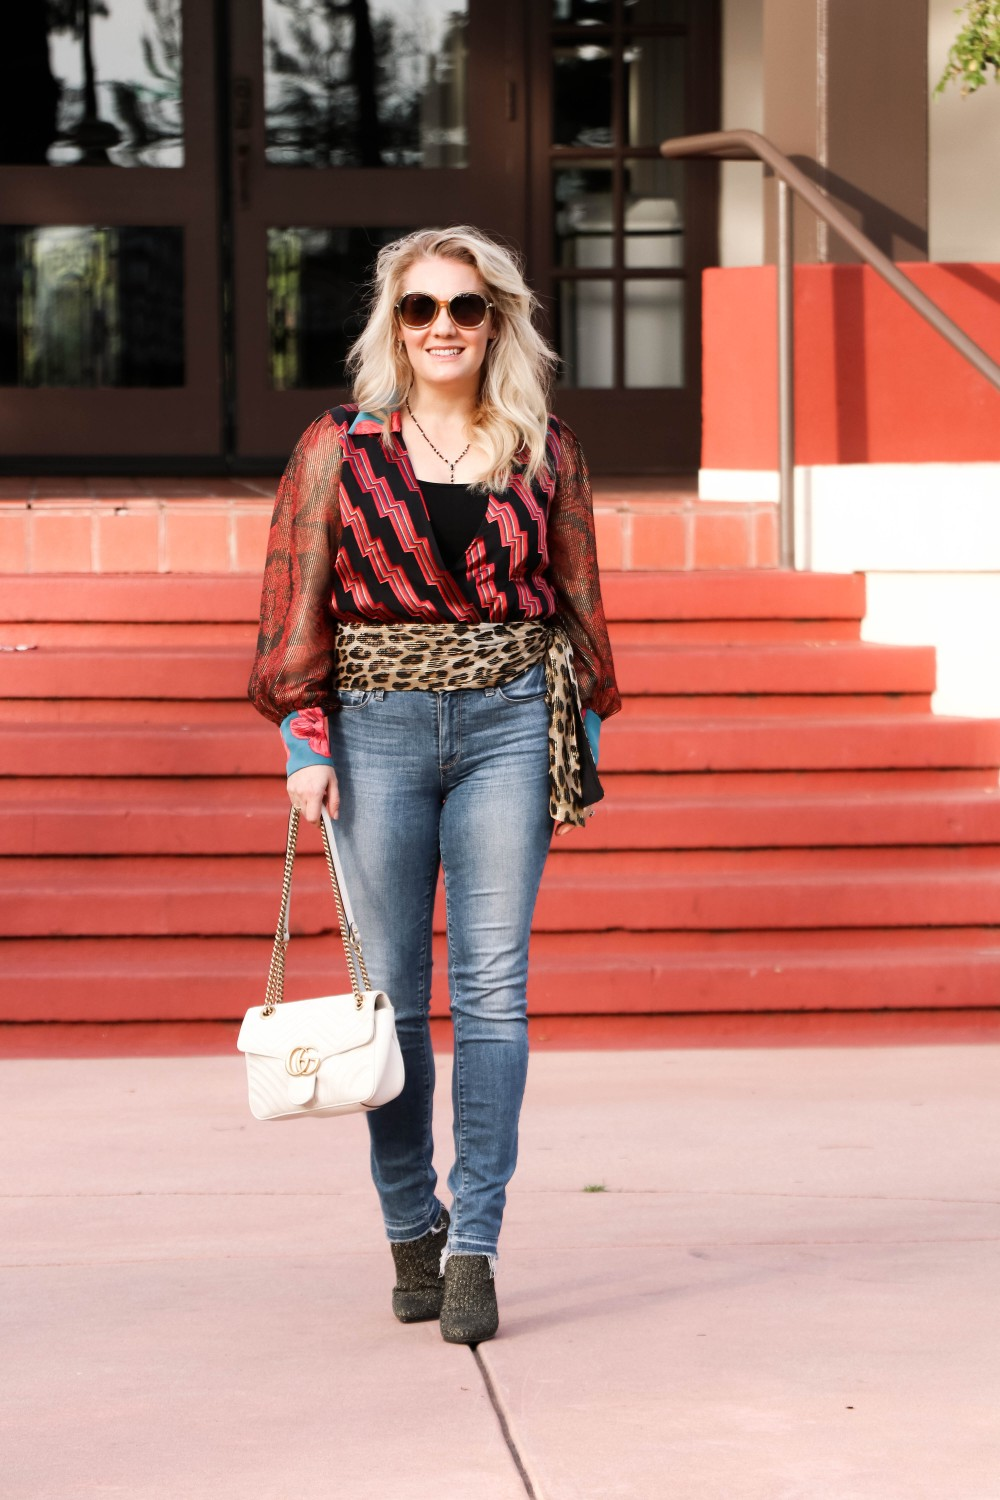 Alice and Olivia Mixed Print Top for Date Night. This Top is a Showstopper! Click on the Photo to Read the Post! | Have Need Want  #datenight #outfitinspo #aliceandolivia #printmixing